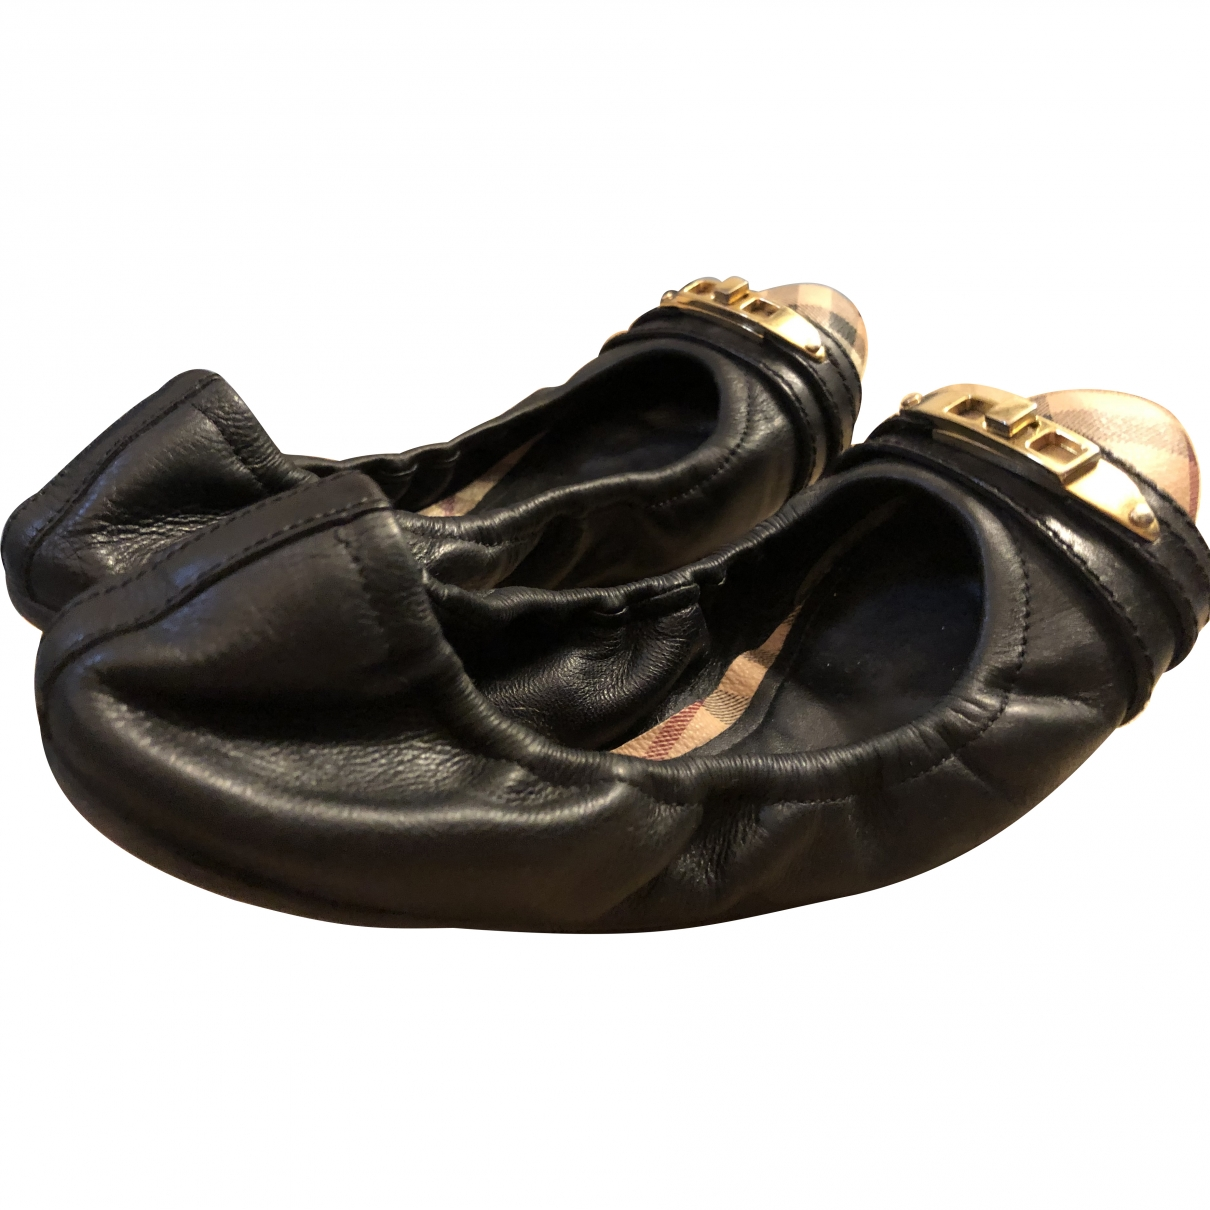 Burberry \N Black Leather Ballet flats for Women 36 EU